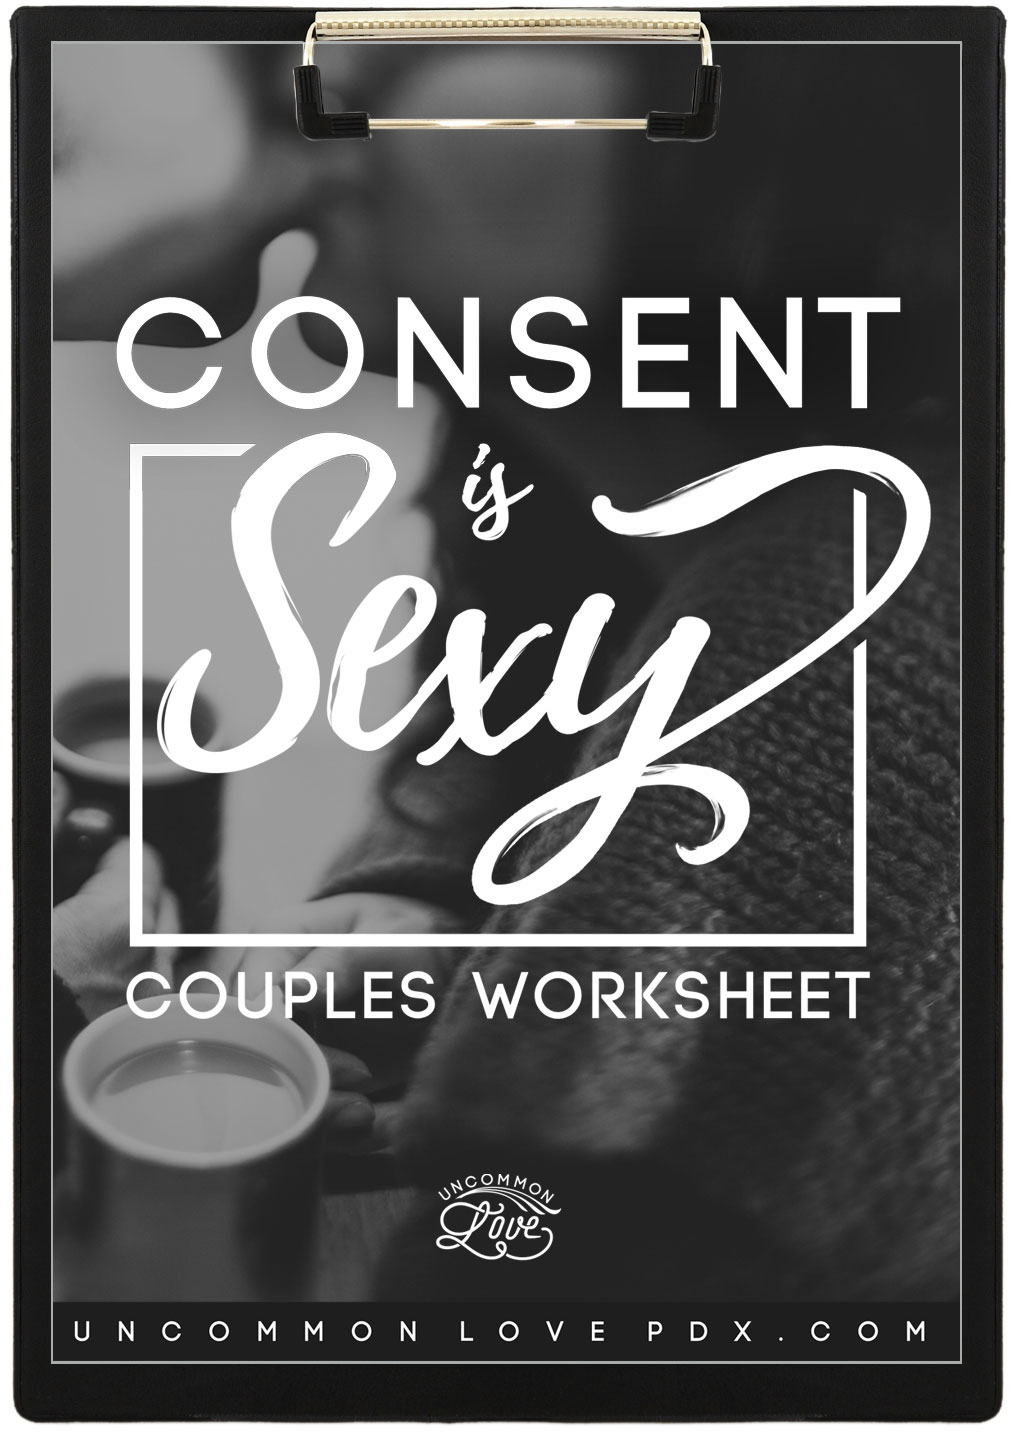 consent in relationships | consent is sexy | worksheet for couples